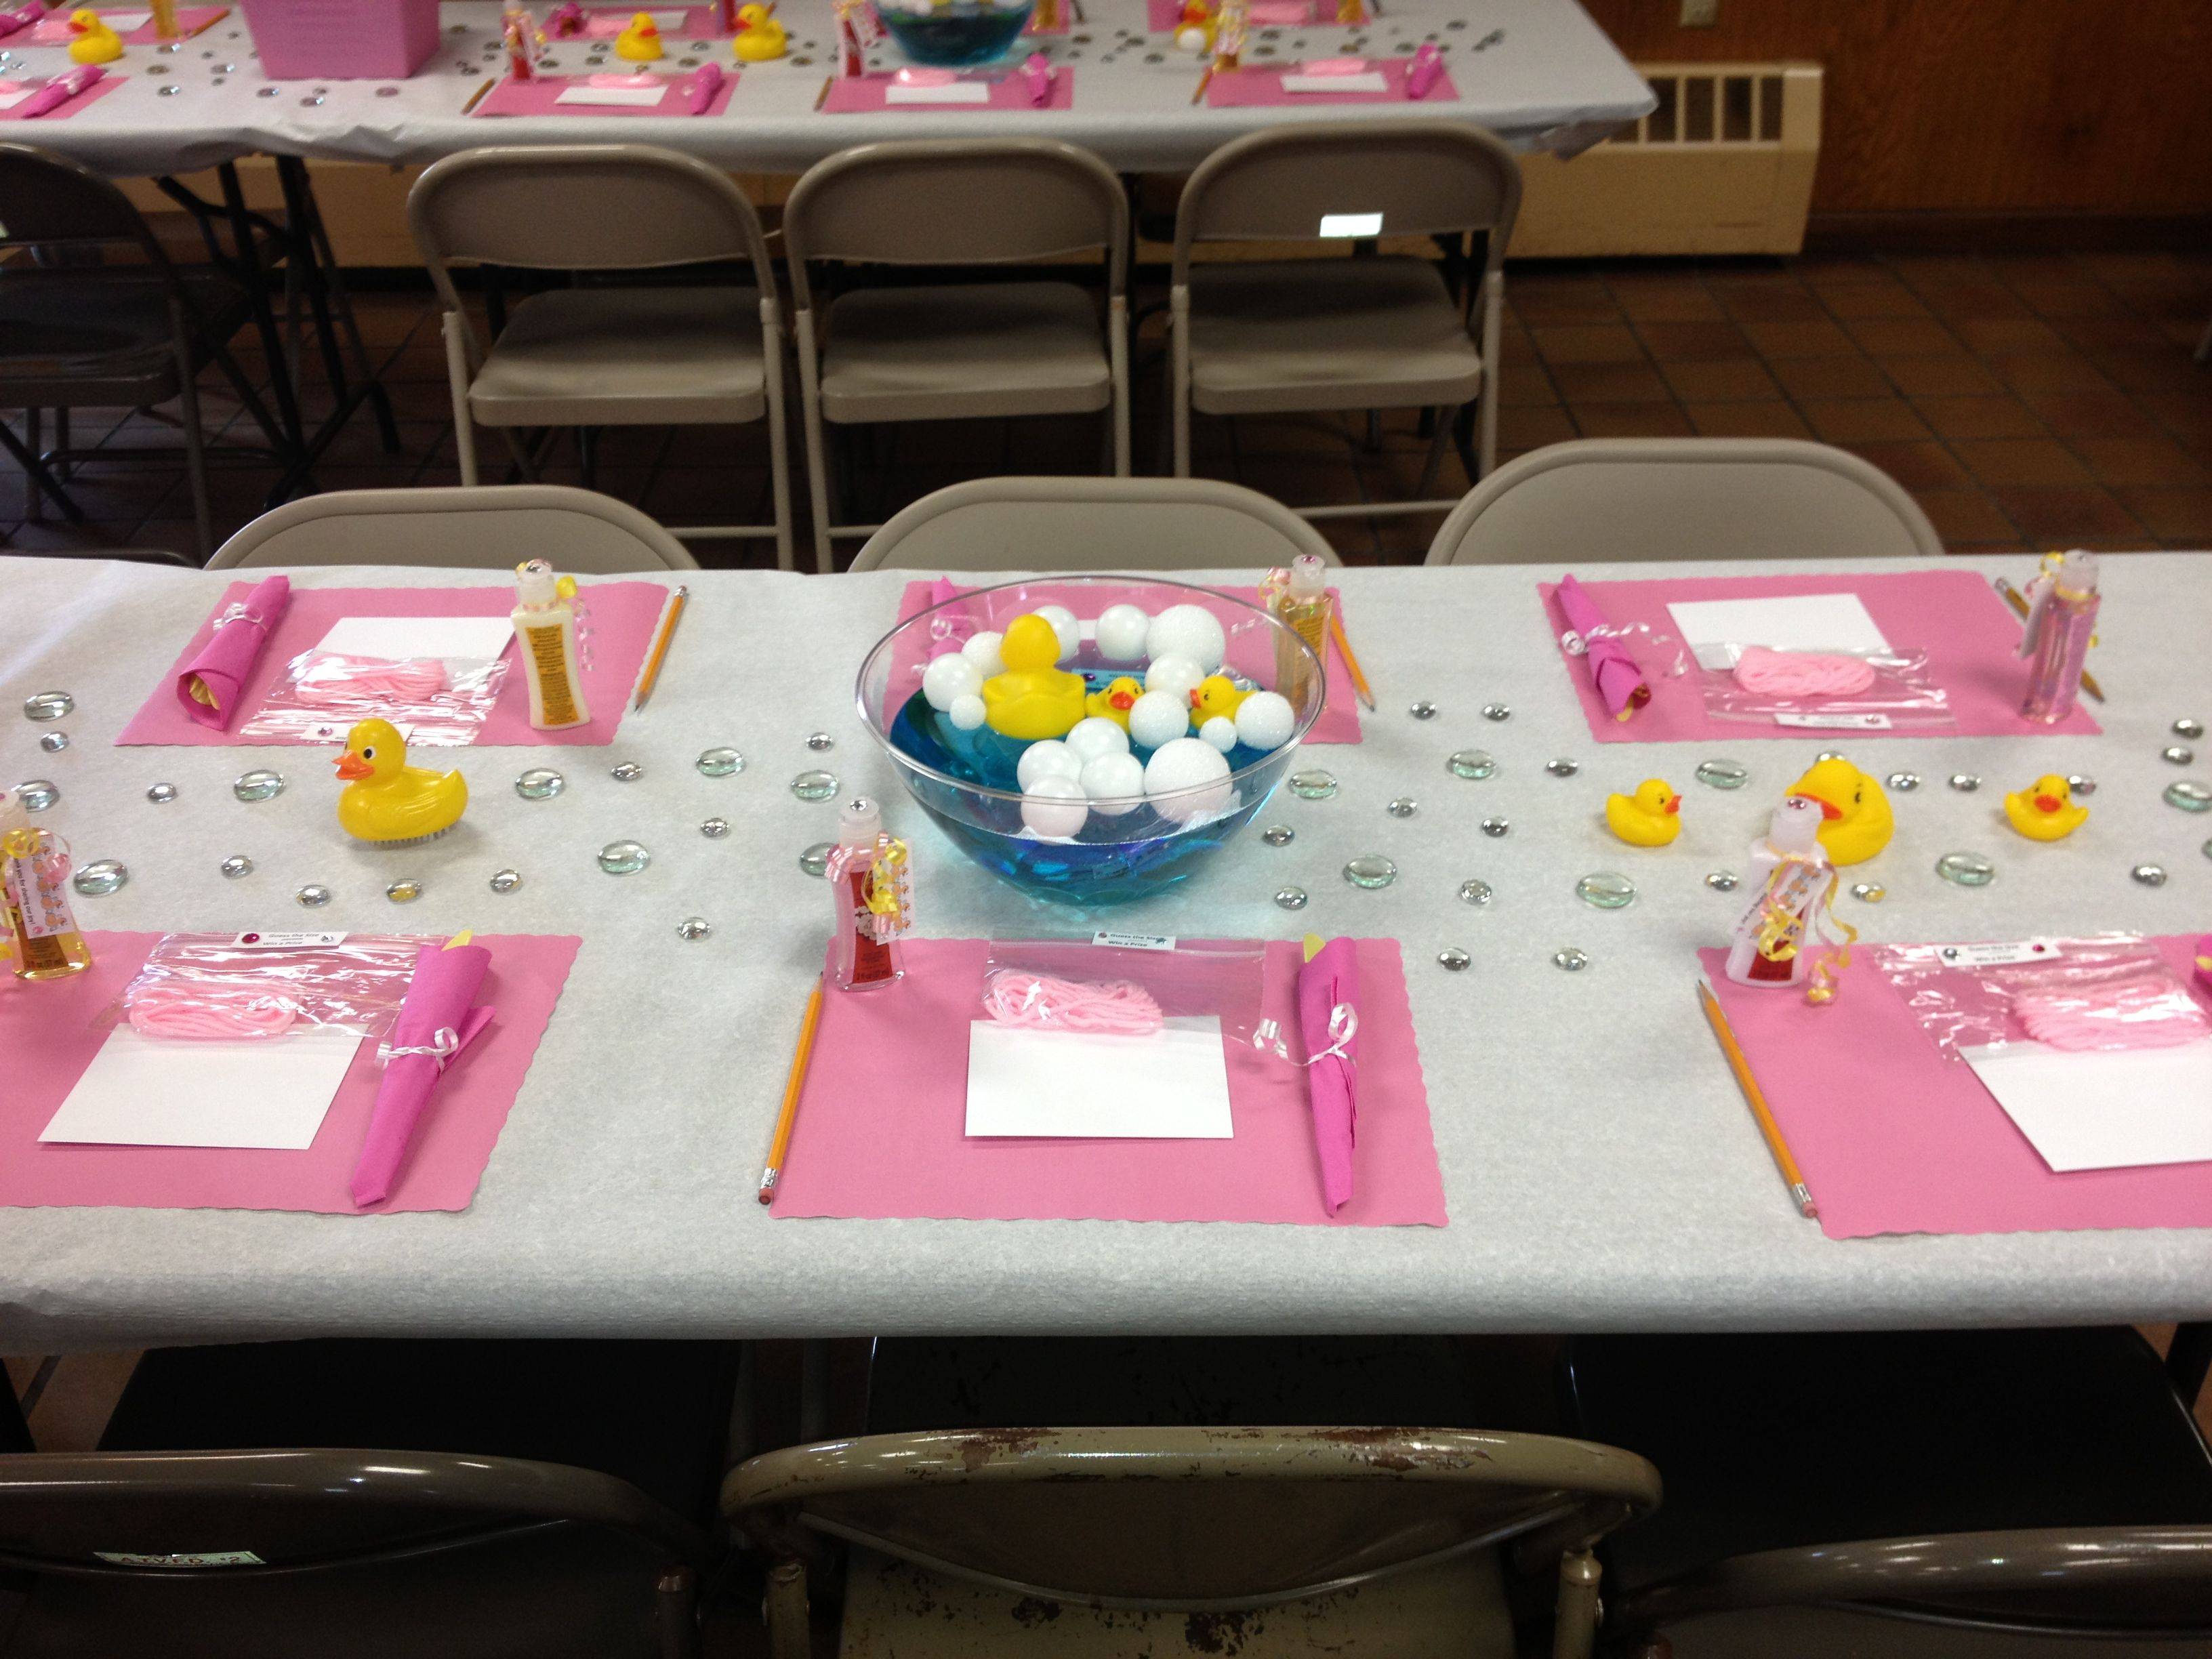 Baby Shower Table Decorations Rubber Ducks Bubbles Pink